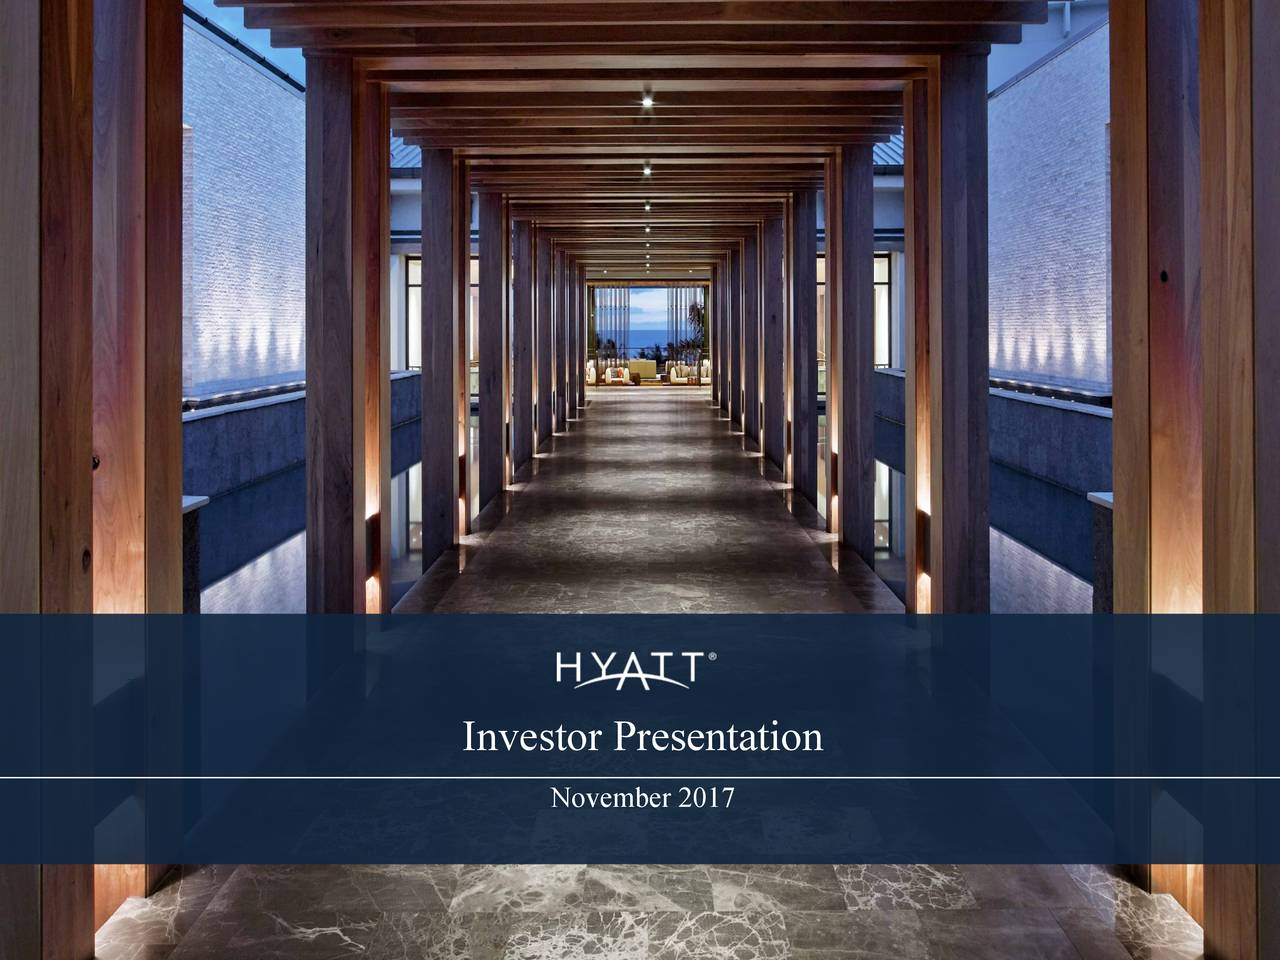 hyatt hotels marketing strategies